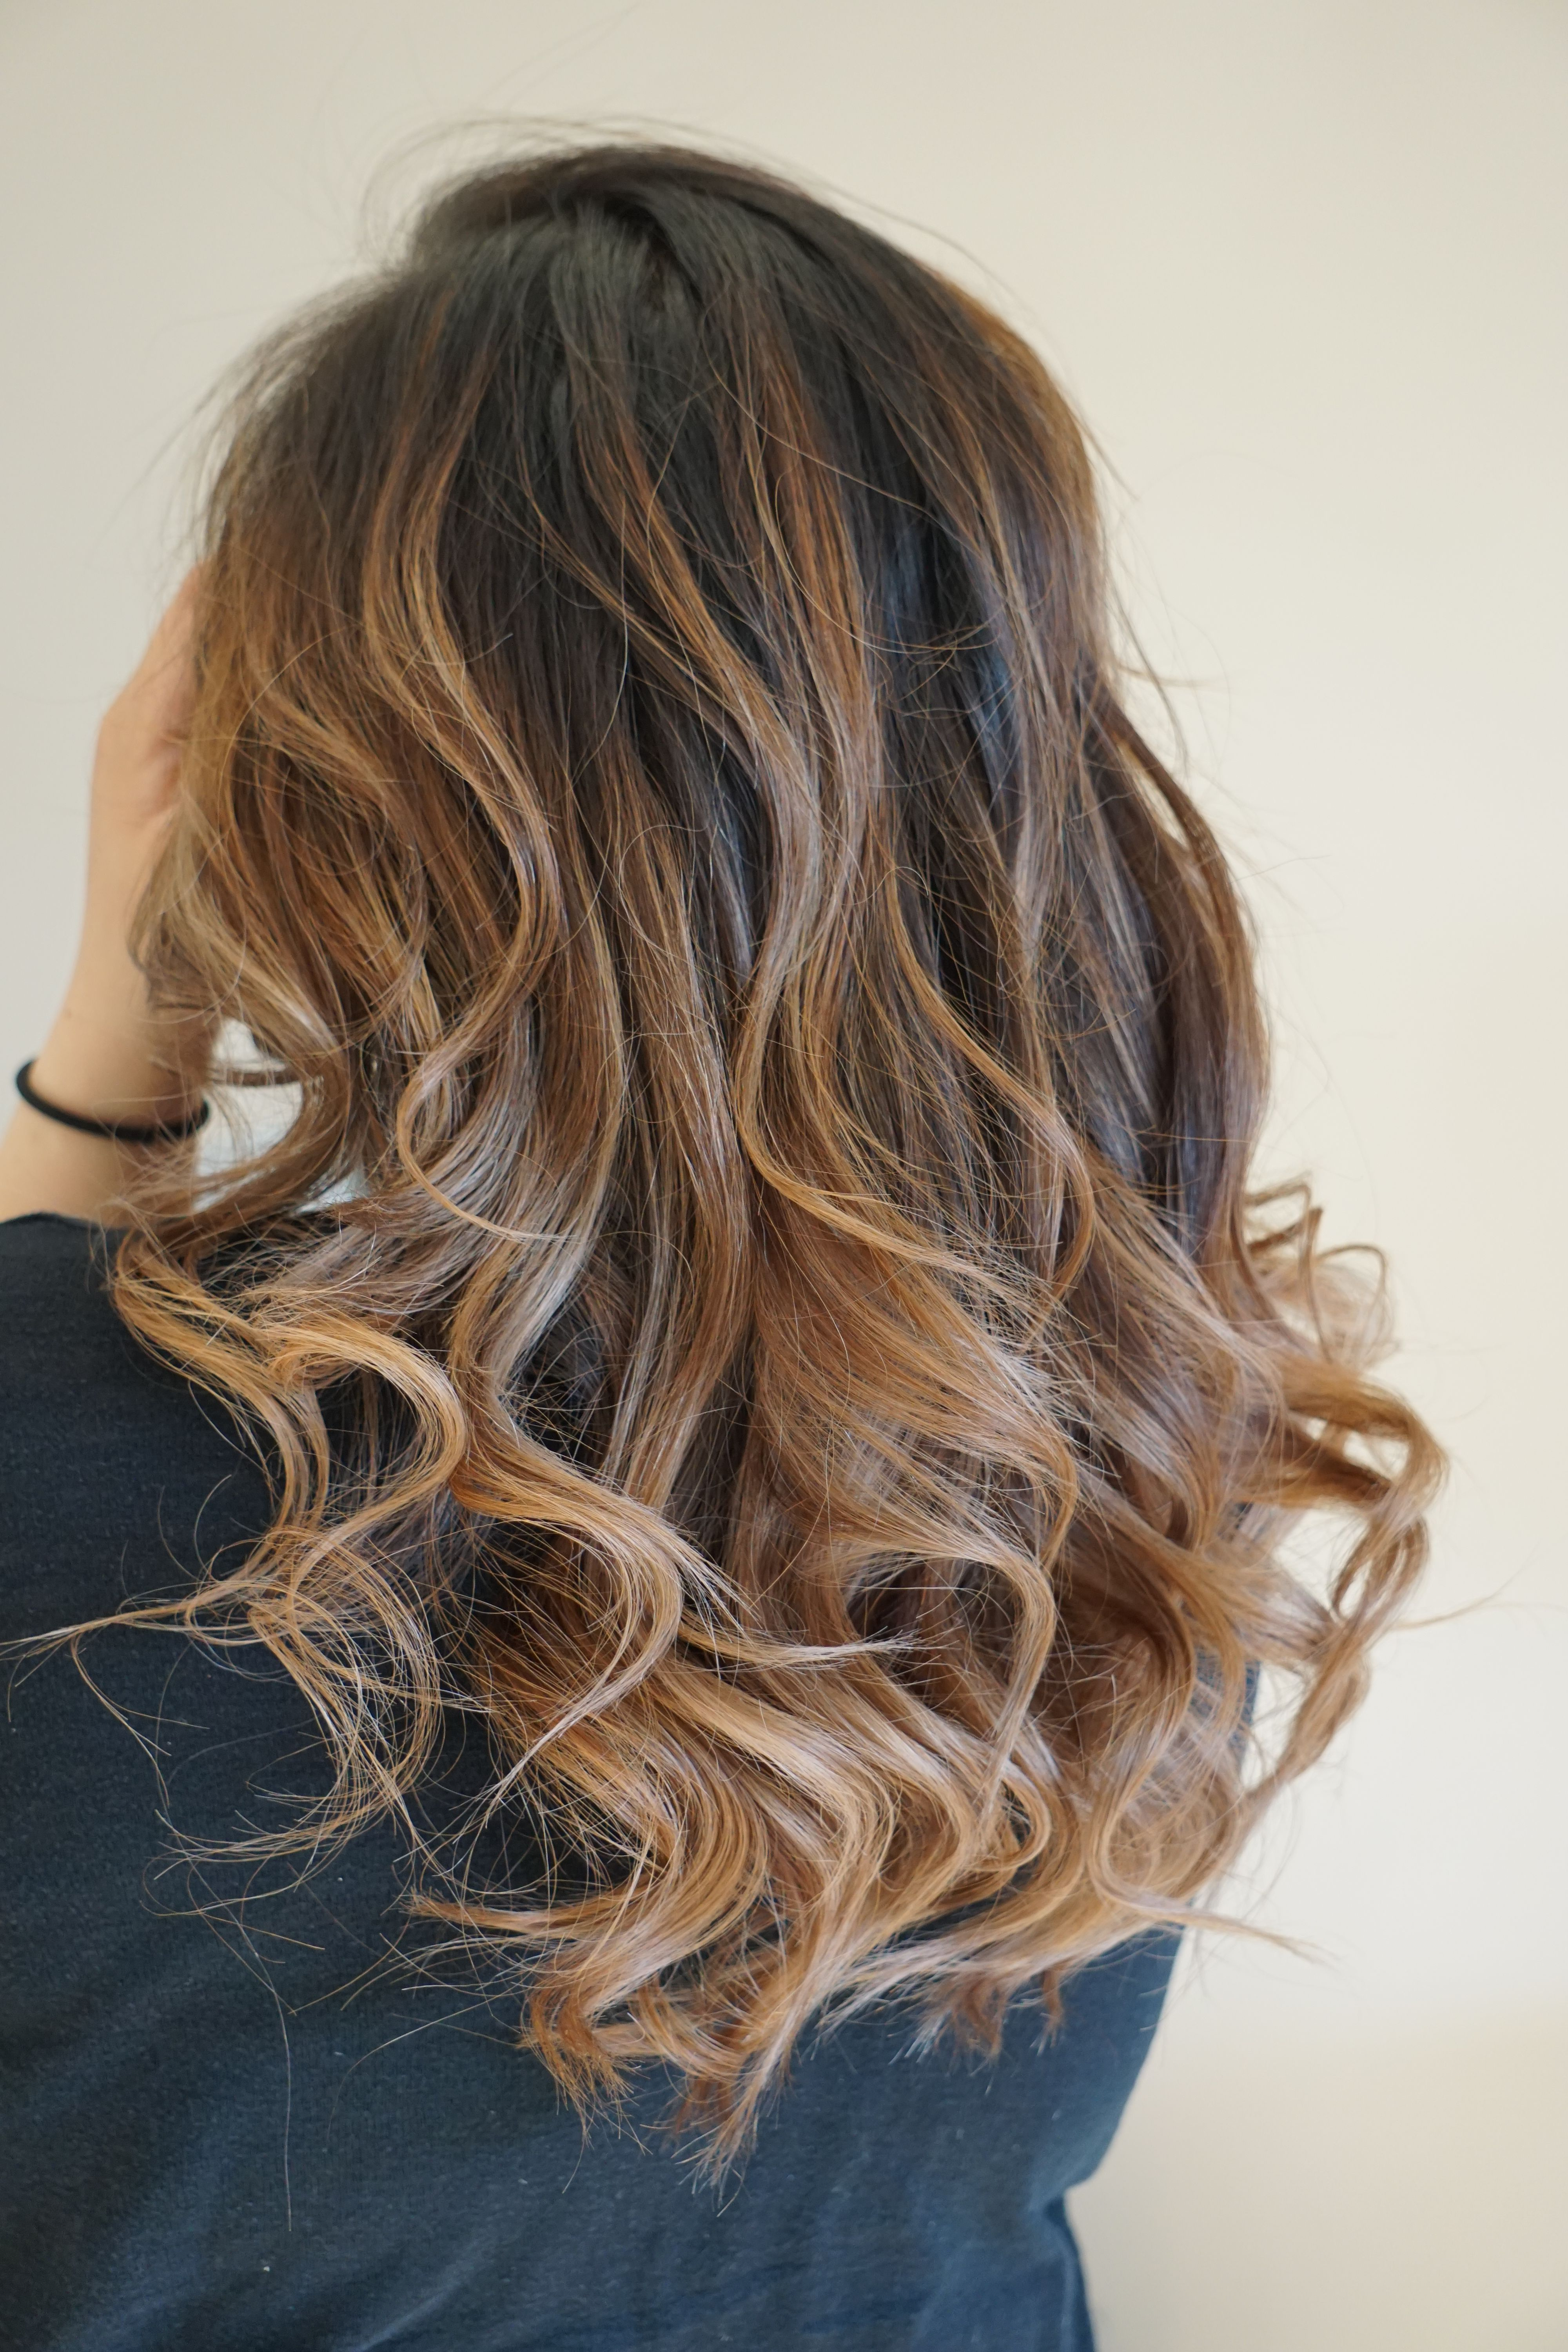 Caramel Ombre Balayage Style On Asian Hair By Mai Style Beauty